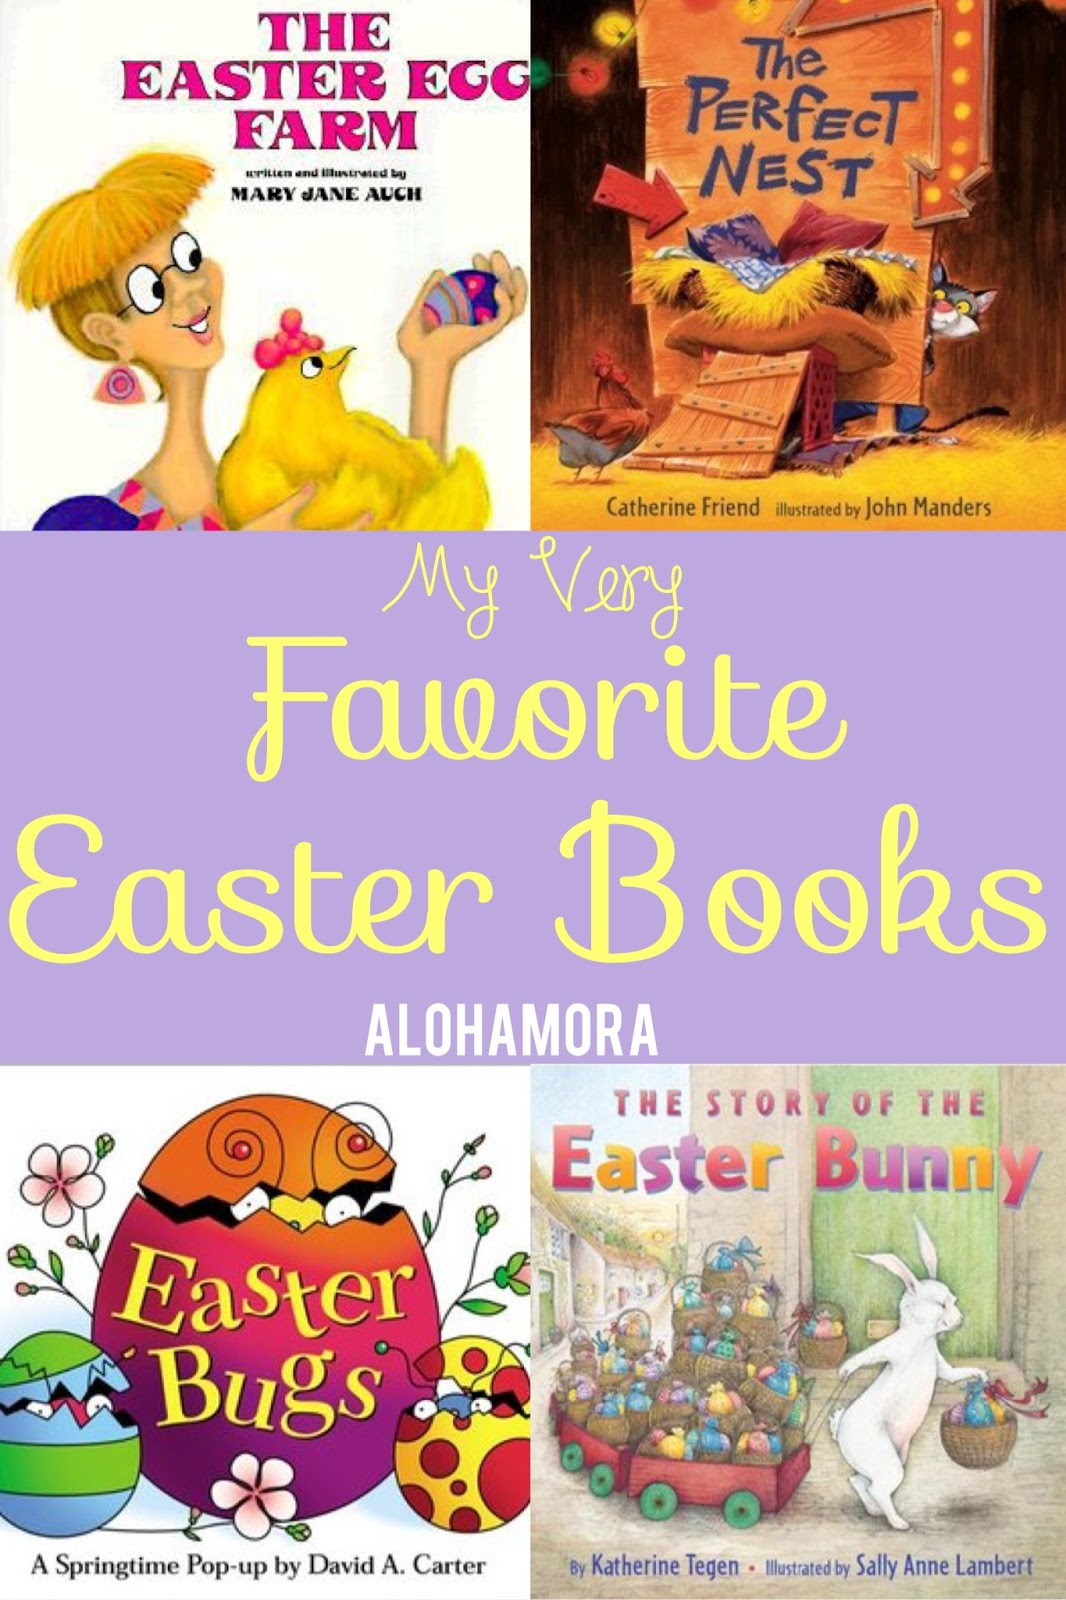 The 4 Very Best, Witty, and Fun Easter Books for all ages (babies, toddlers, elementary school kids, adults, and more).  I've taught library lessons with most of these books as well.  Great read alouds and fun books all around for Easter especially, tho they can be enjoyed year round. Alohamora Open a Book http://alohamoraopenabook.blogspot.com/